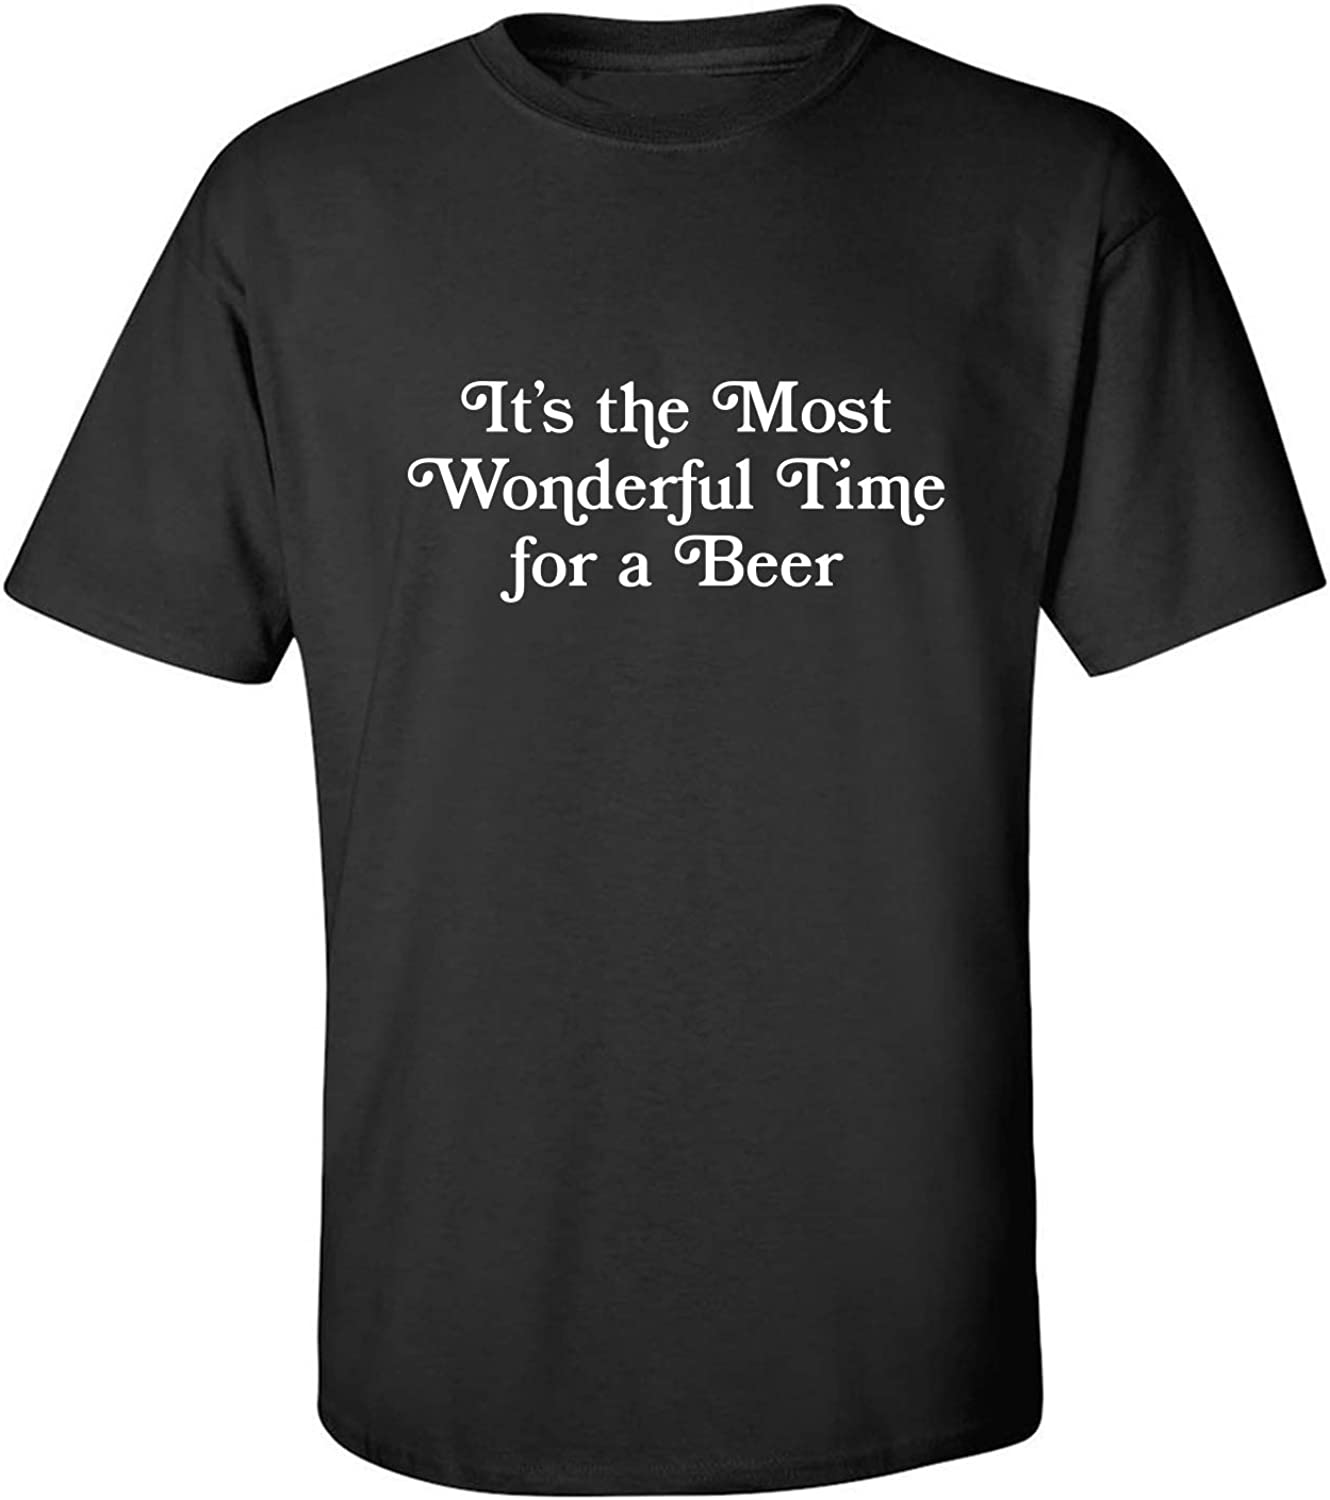 It's The Most Wonderful Time Adult T-Shirt in Black - XXX-Large